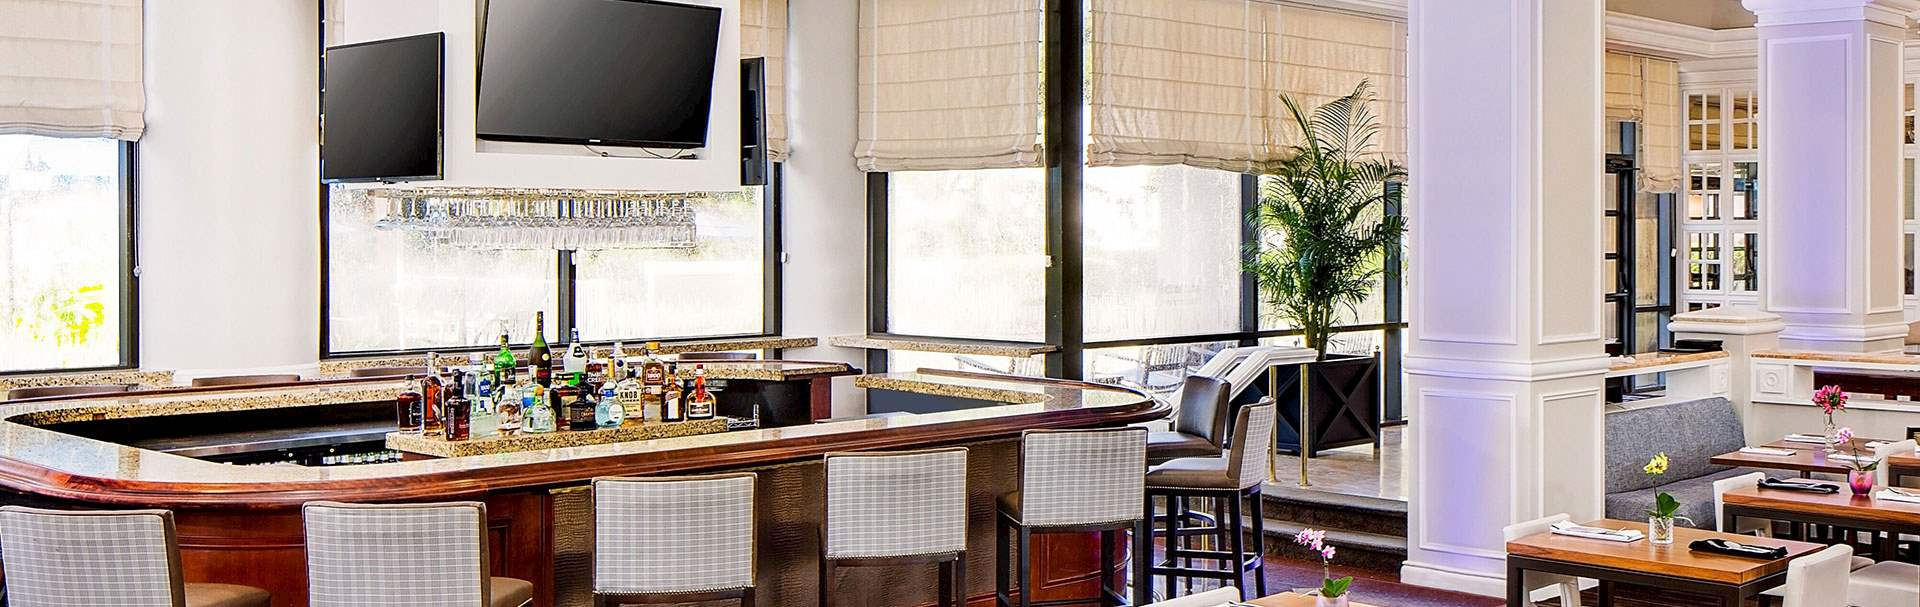 Market Kitchen & Bar at Hilton Ocala Hotel